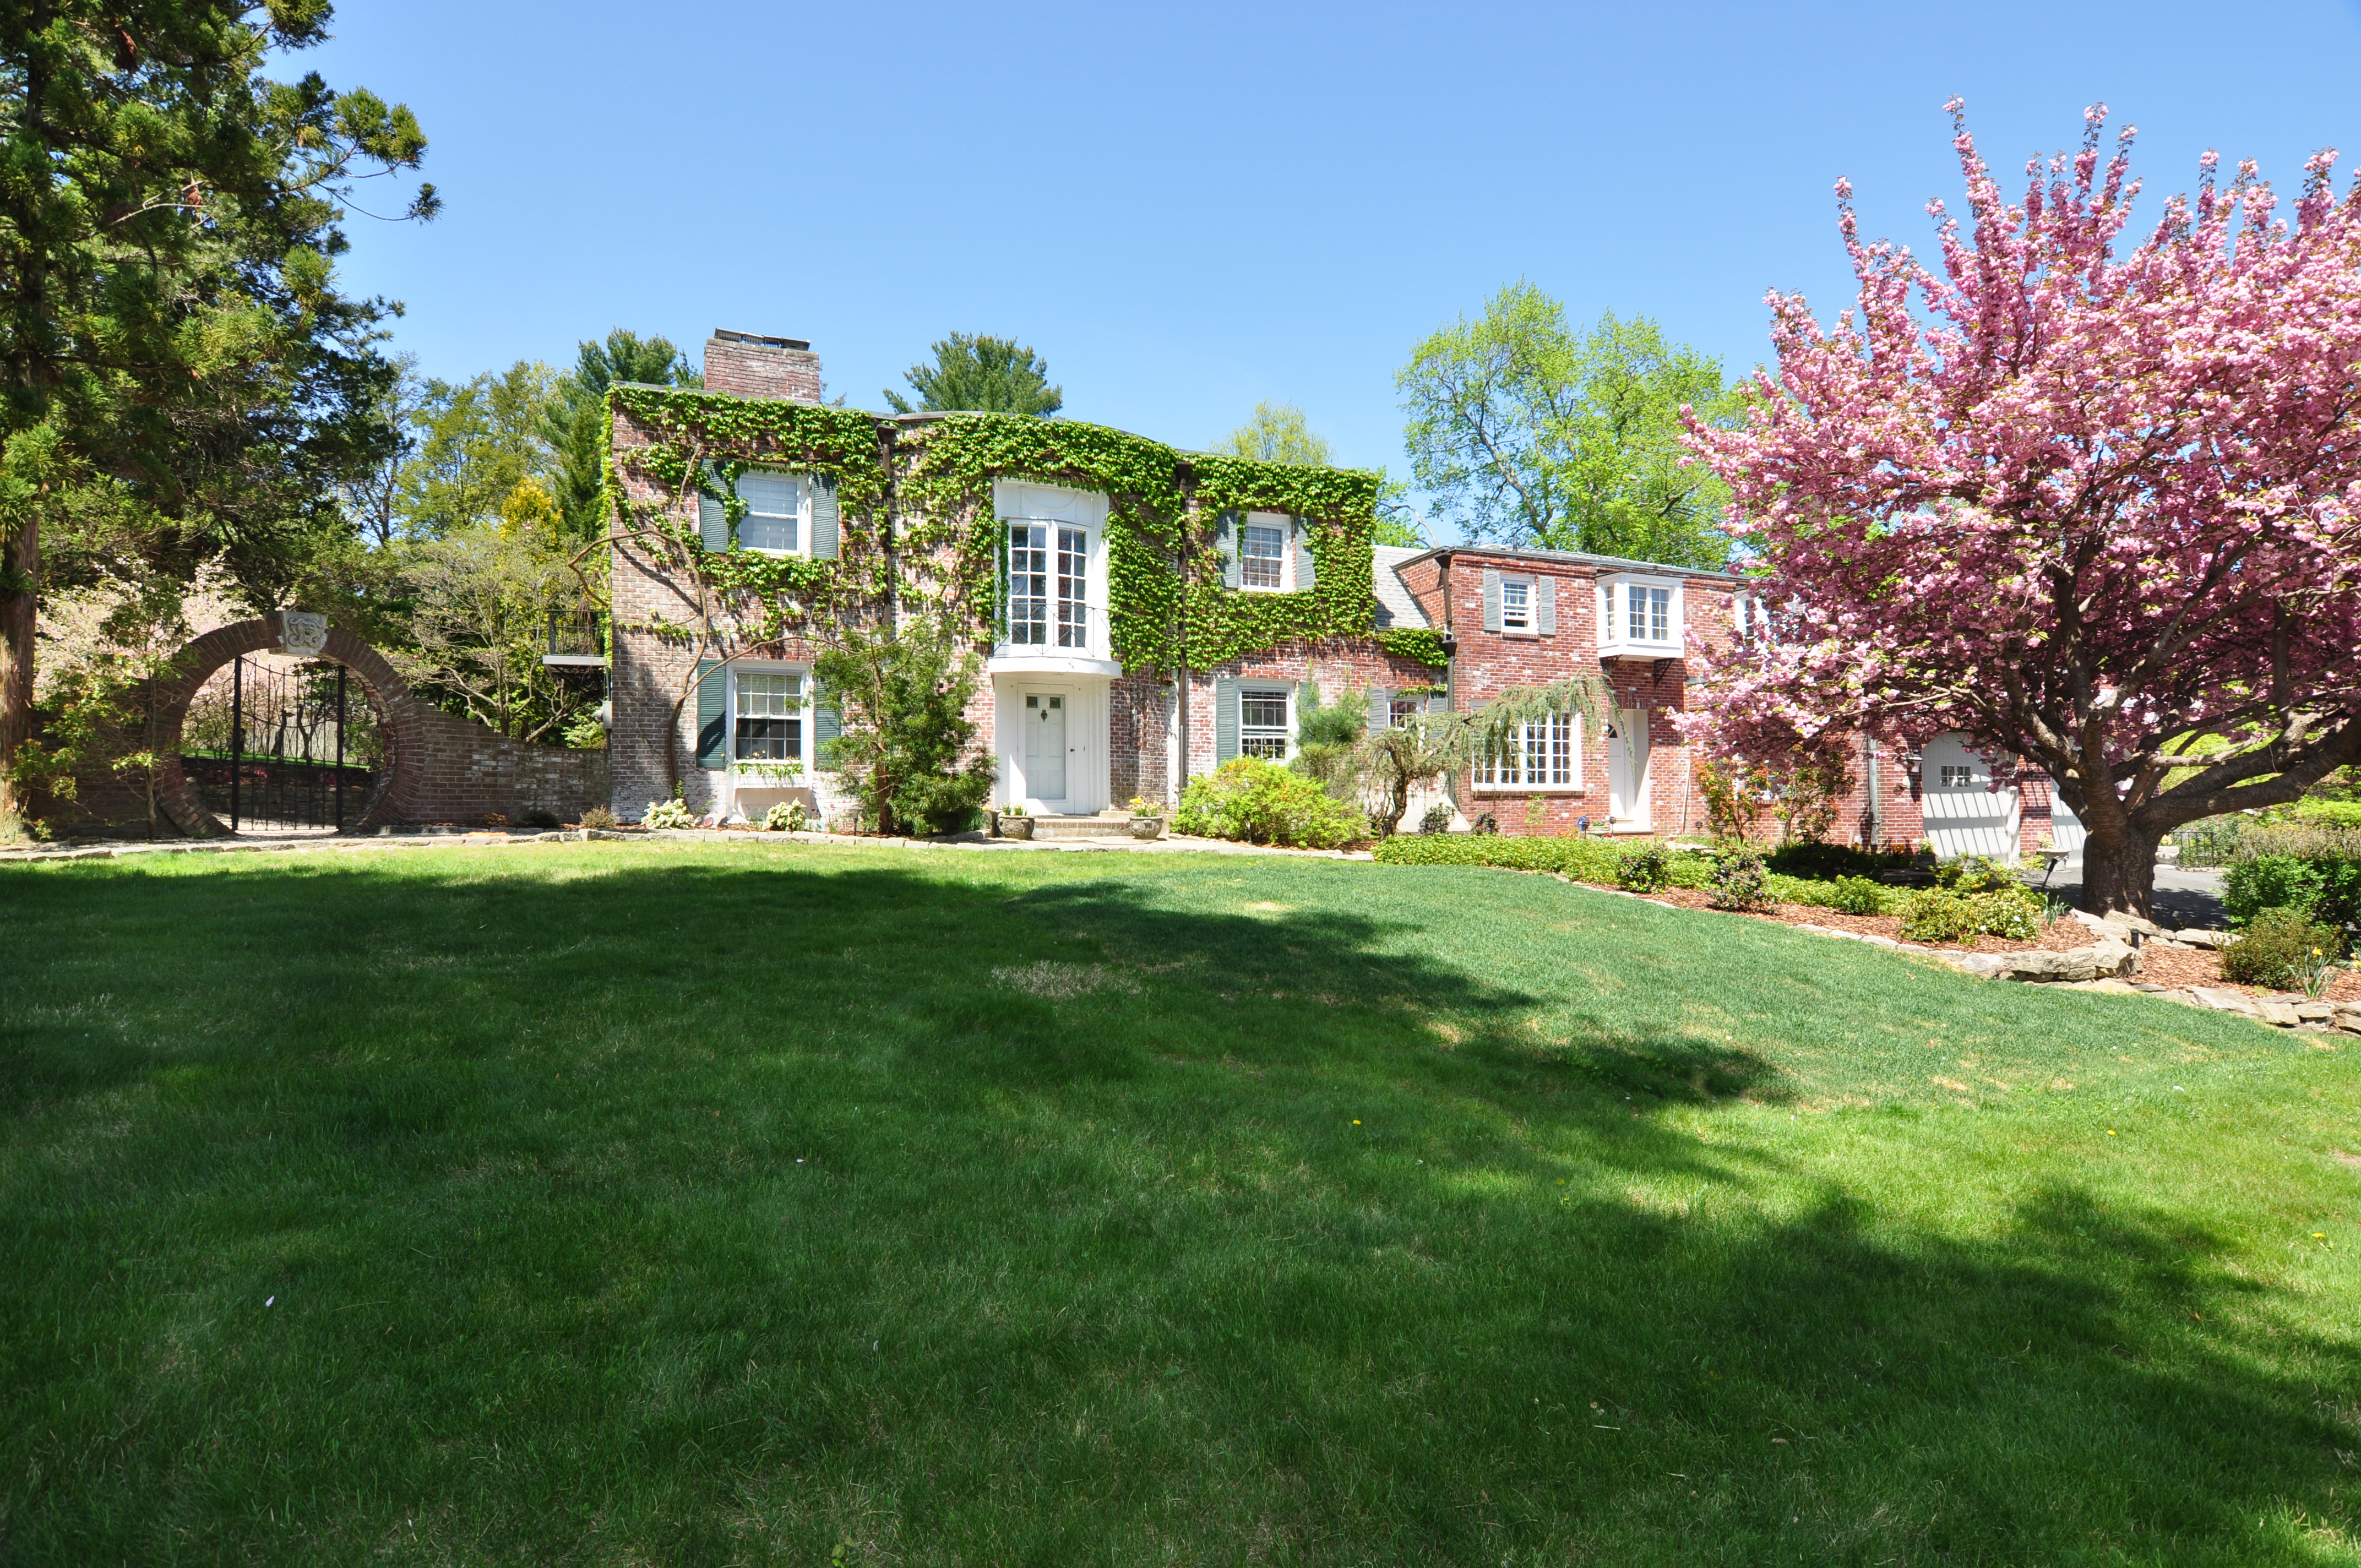 Property For Sale at Spectacular Brick Colonial